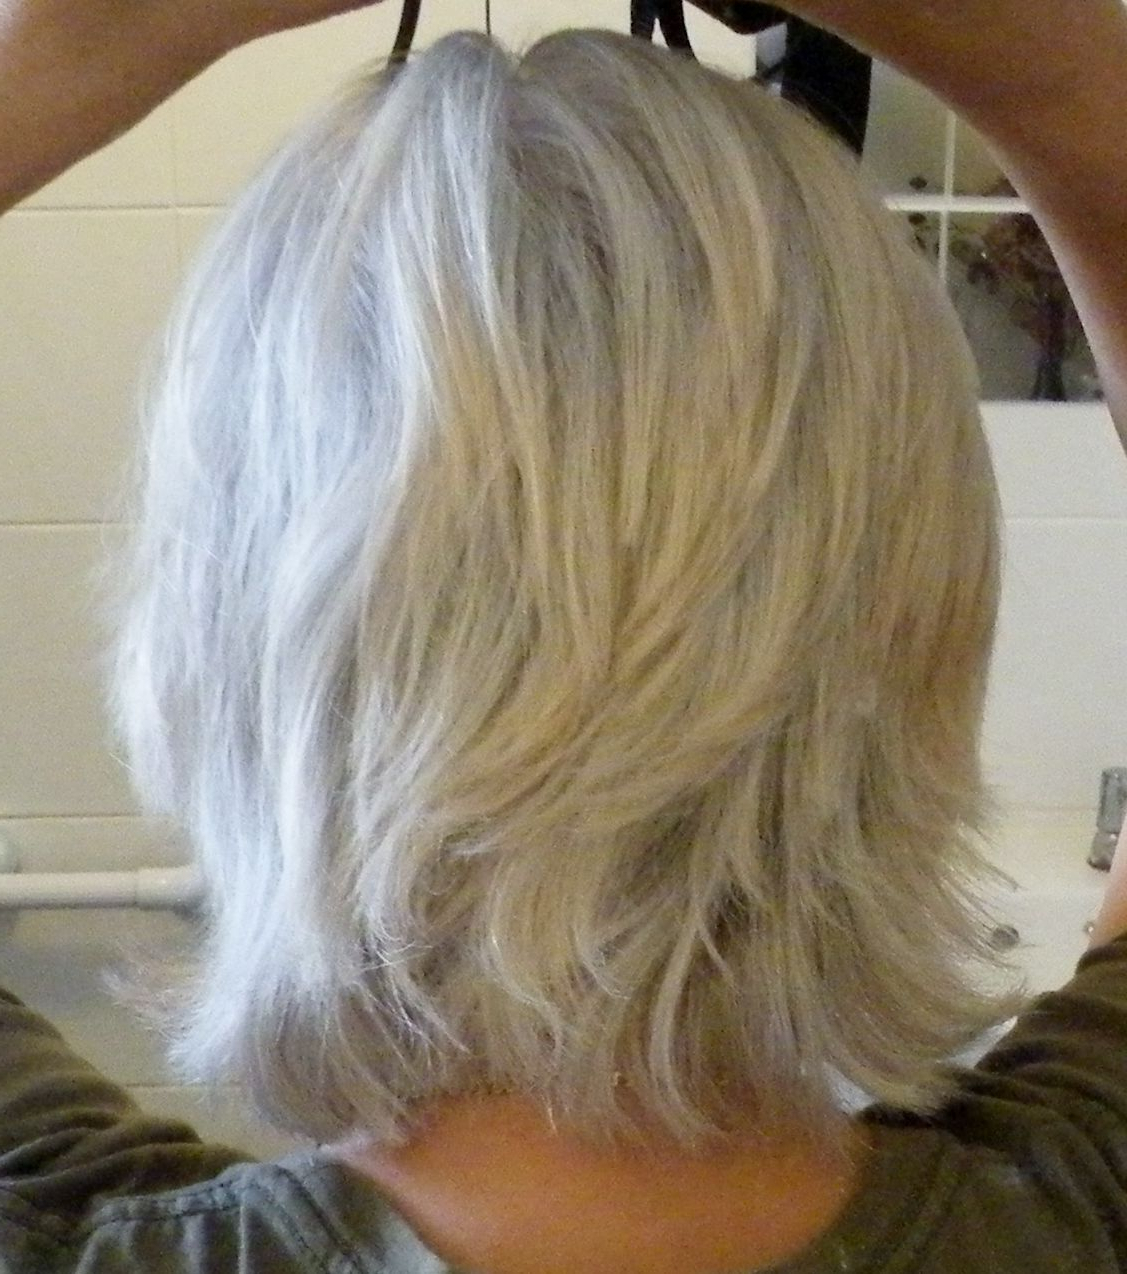 Possible Short Ish Cut For When The Growing Out Phase Is Driving Me Regarding Most Up To Date Medium Hairstyles For Grey Hair (View 16 of 20)